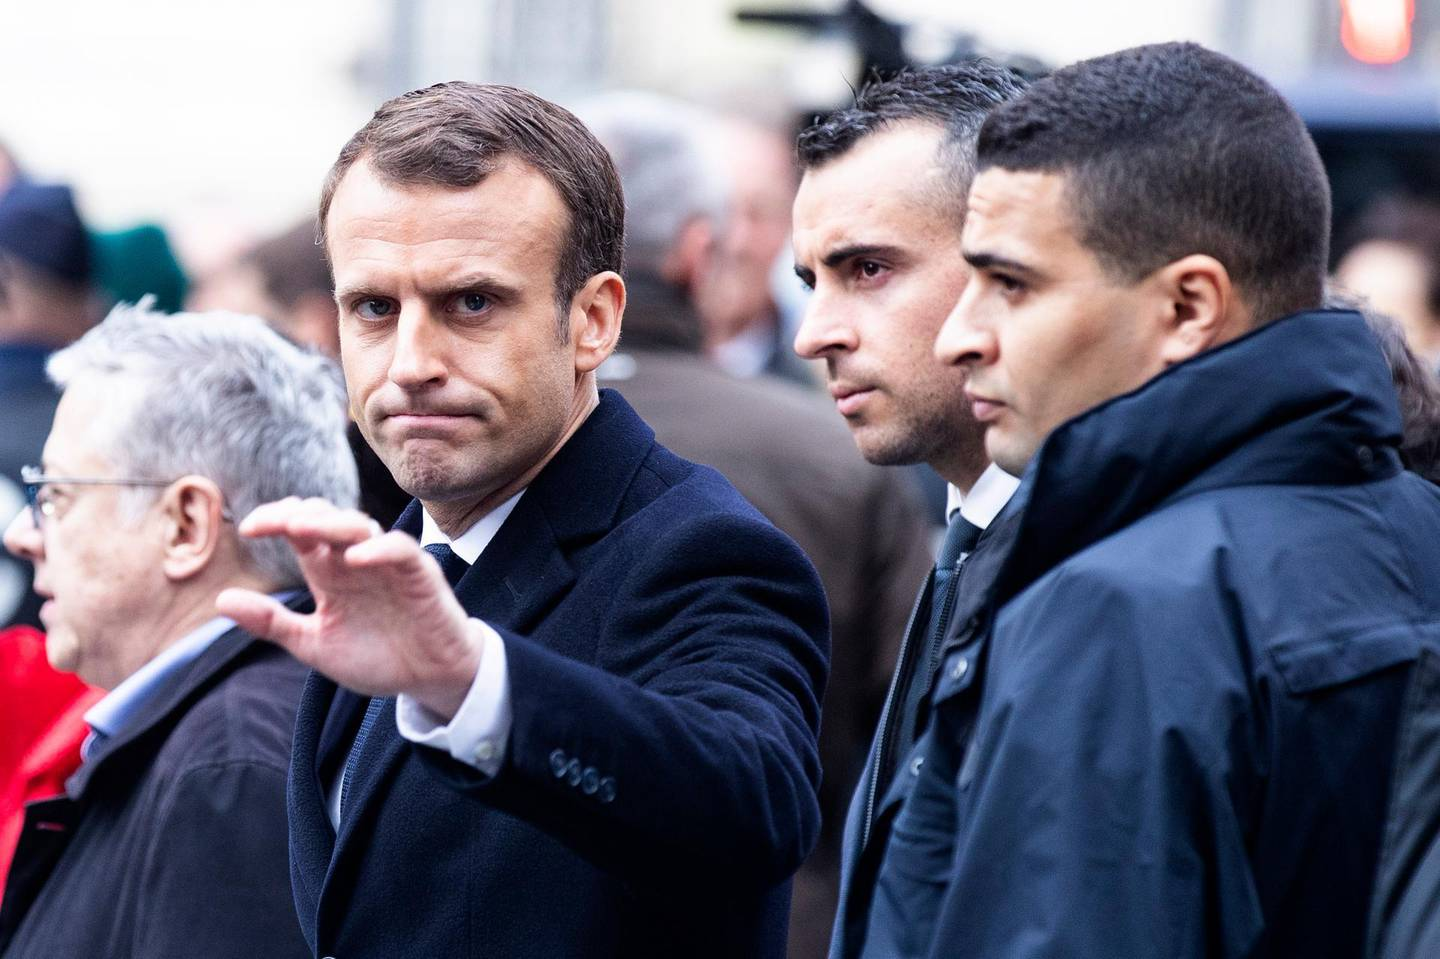 epa07205324 French President Emmanuel Macron (C) waves to citizens as he assesses the damages of the 'Yellow Vests' protest a day earlier, next to the Champs Elysee in Paris, France, 02 December 2018 (03 December 2018). The so-called 'gilets jaunes' (yellow vests) are a protest movement, which reportedly has no political affiliation, is protesting across the nation over high fuel prices.  EPA/ETIENNE LAURENT